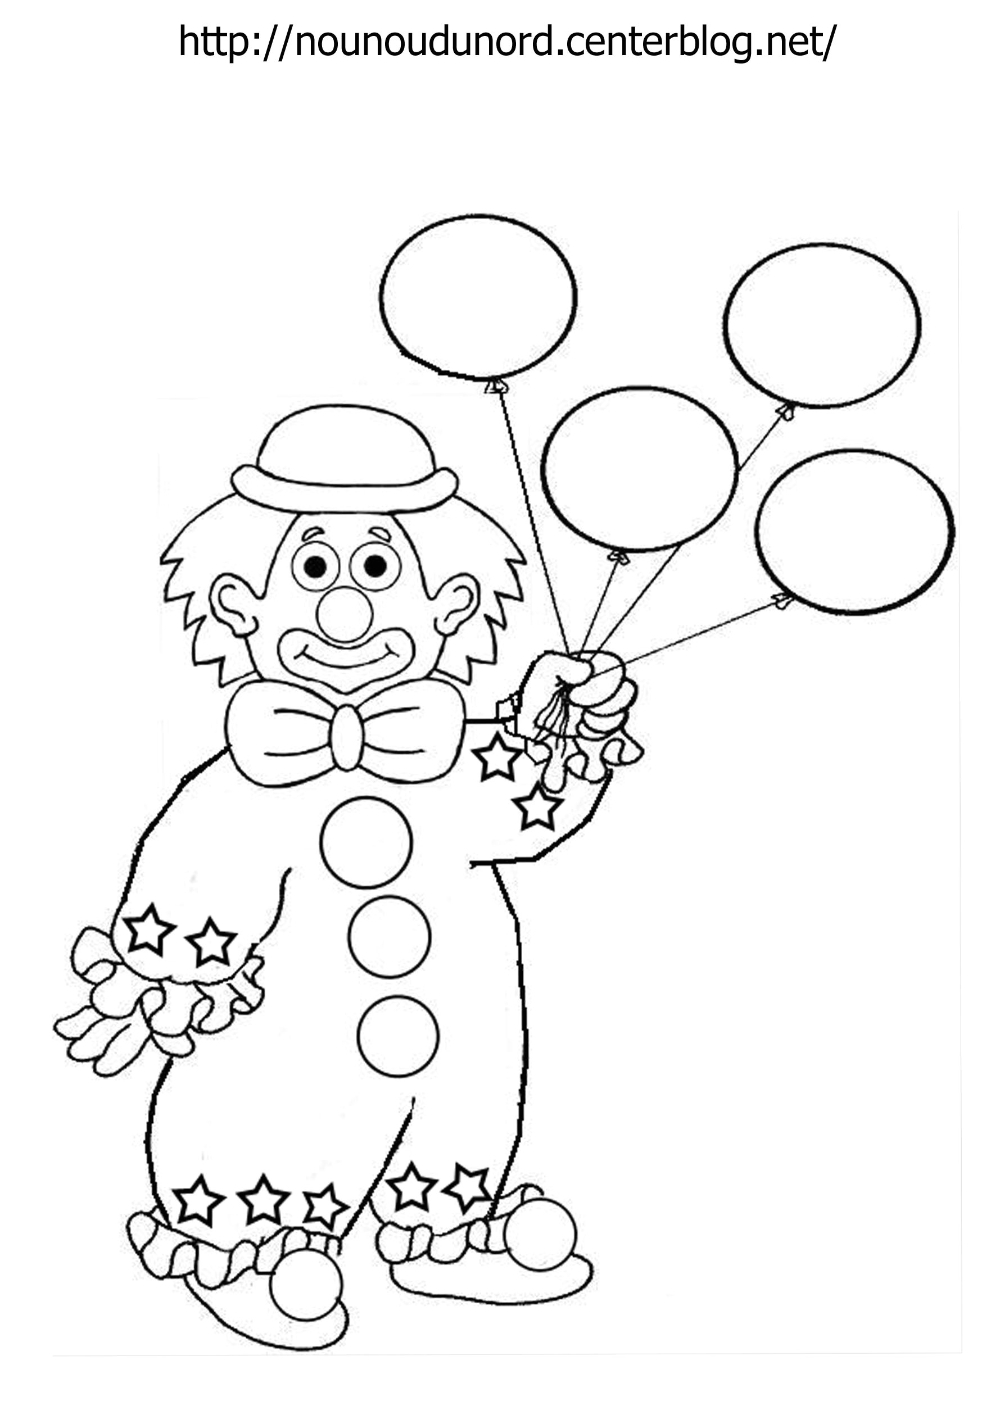 Dessin Clown Tueur A Imprimer En 2020 | Coloriage Clown serapportantà Coloriage Clown A Imprimer